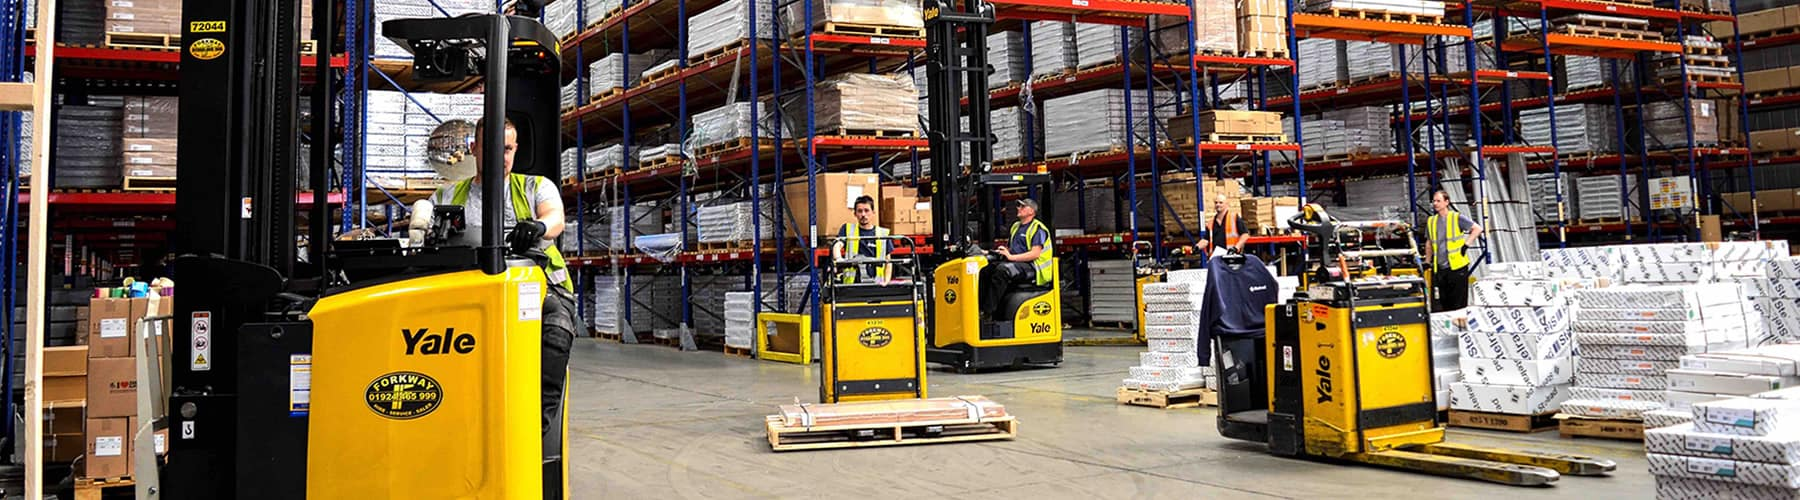 Forklifts in South Yorkshire